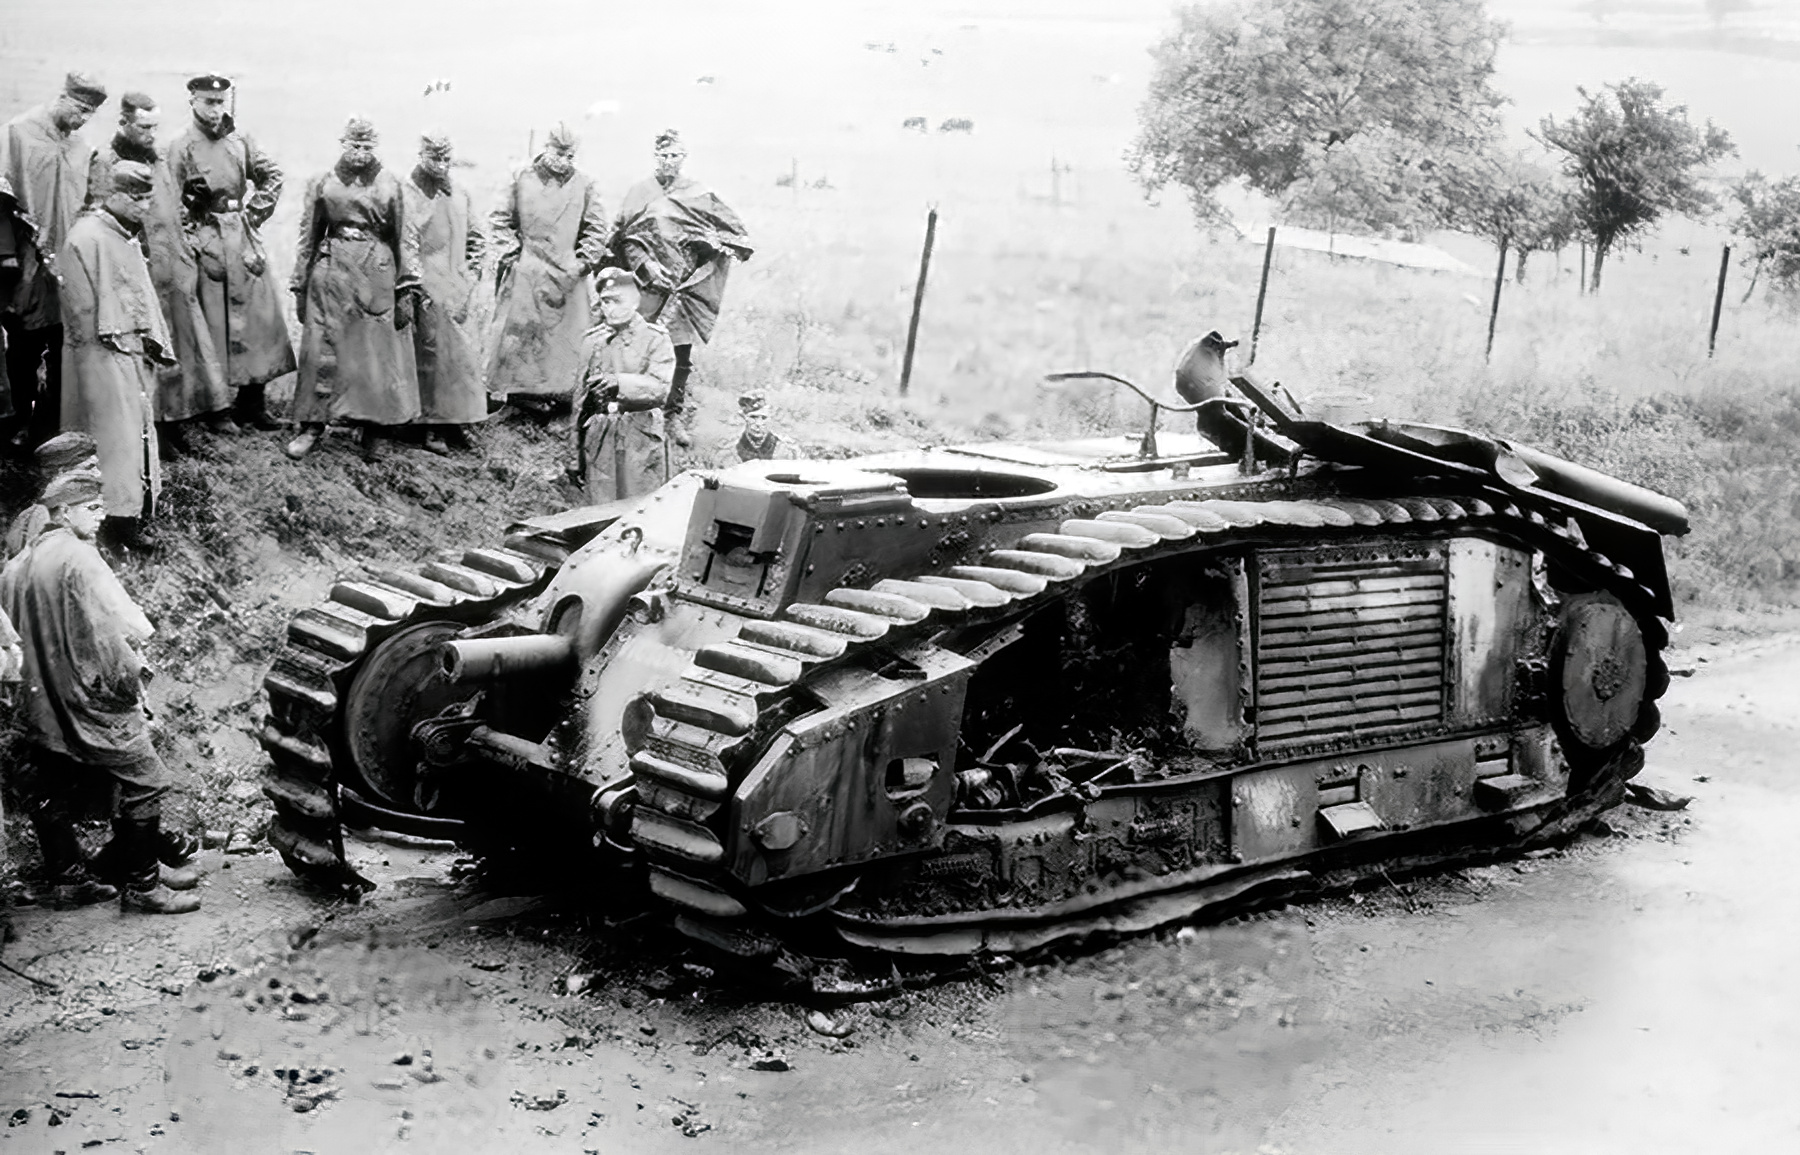 French Army Renault Char B1bis being examined by German soldiers France 1940 02